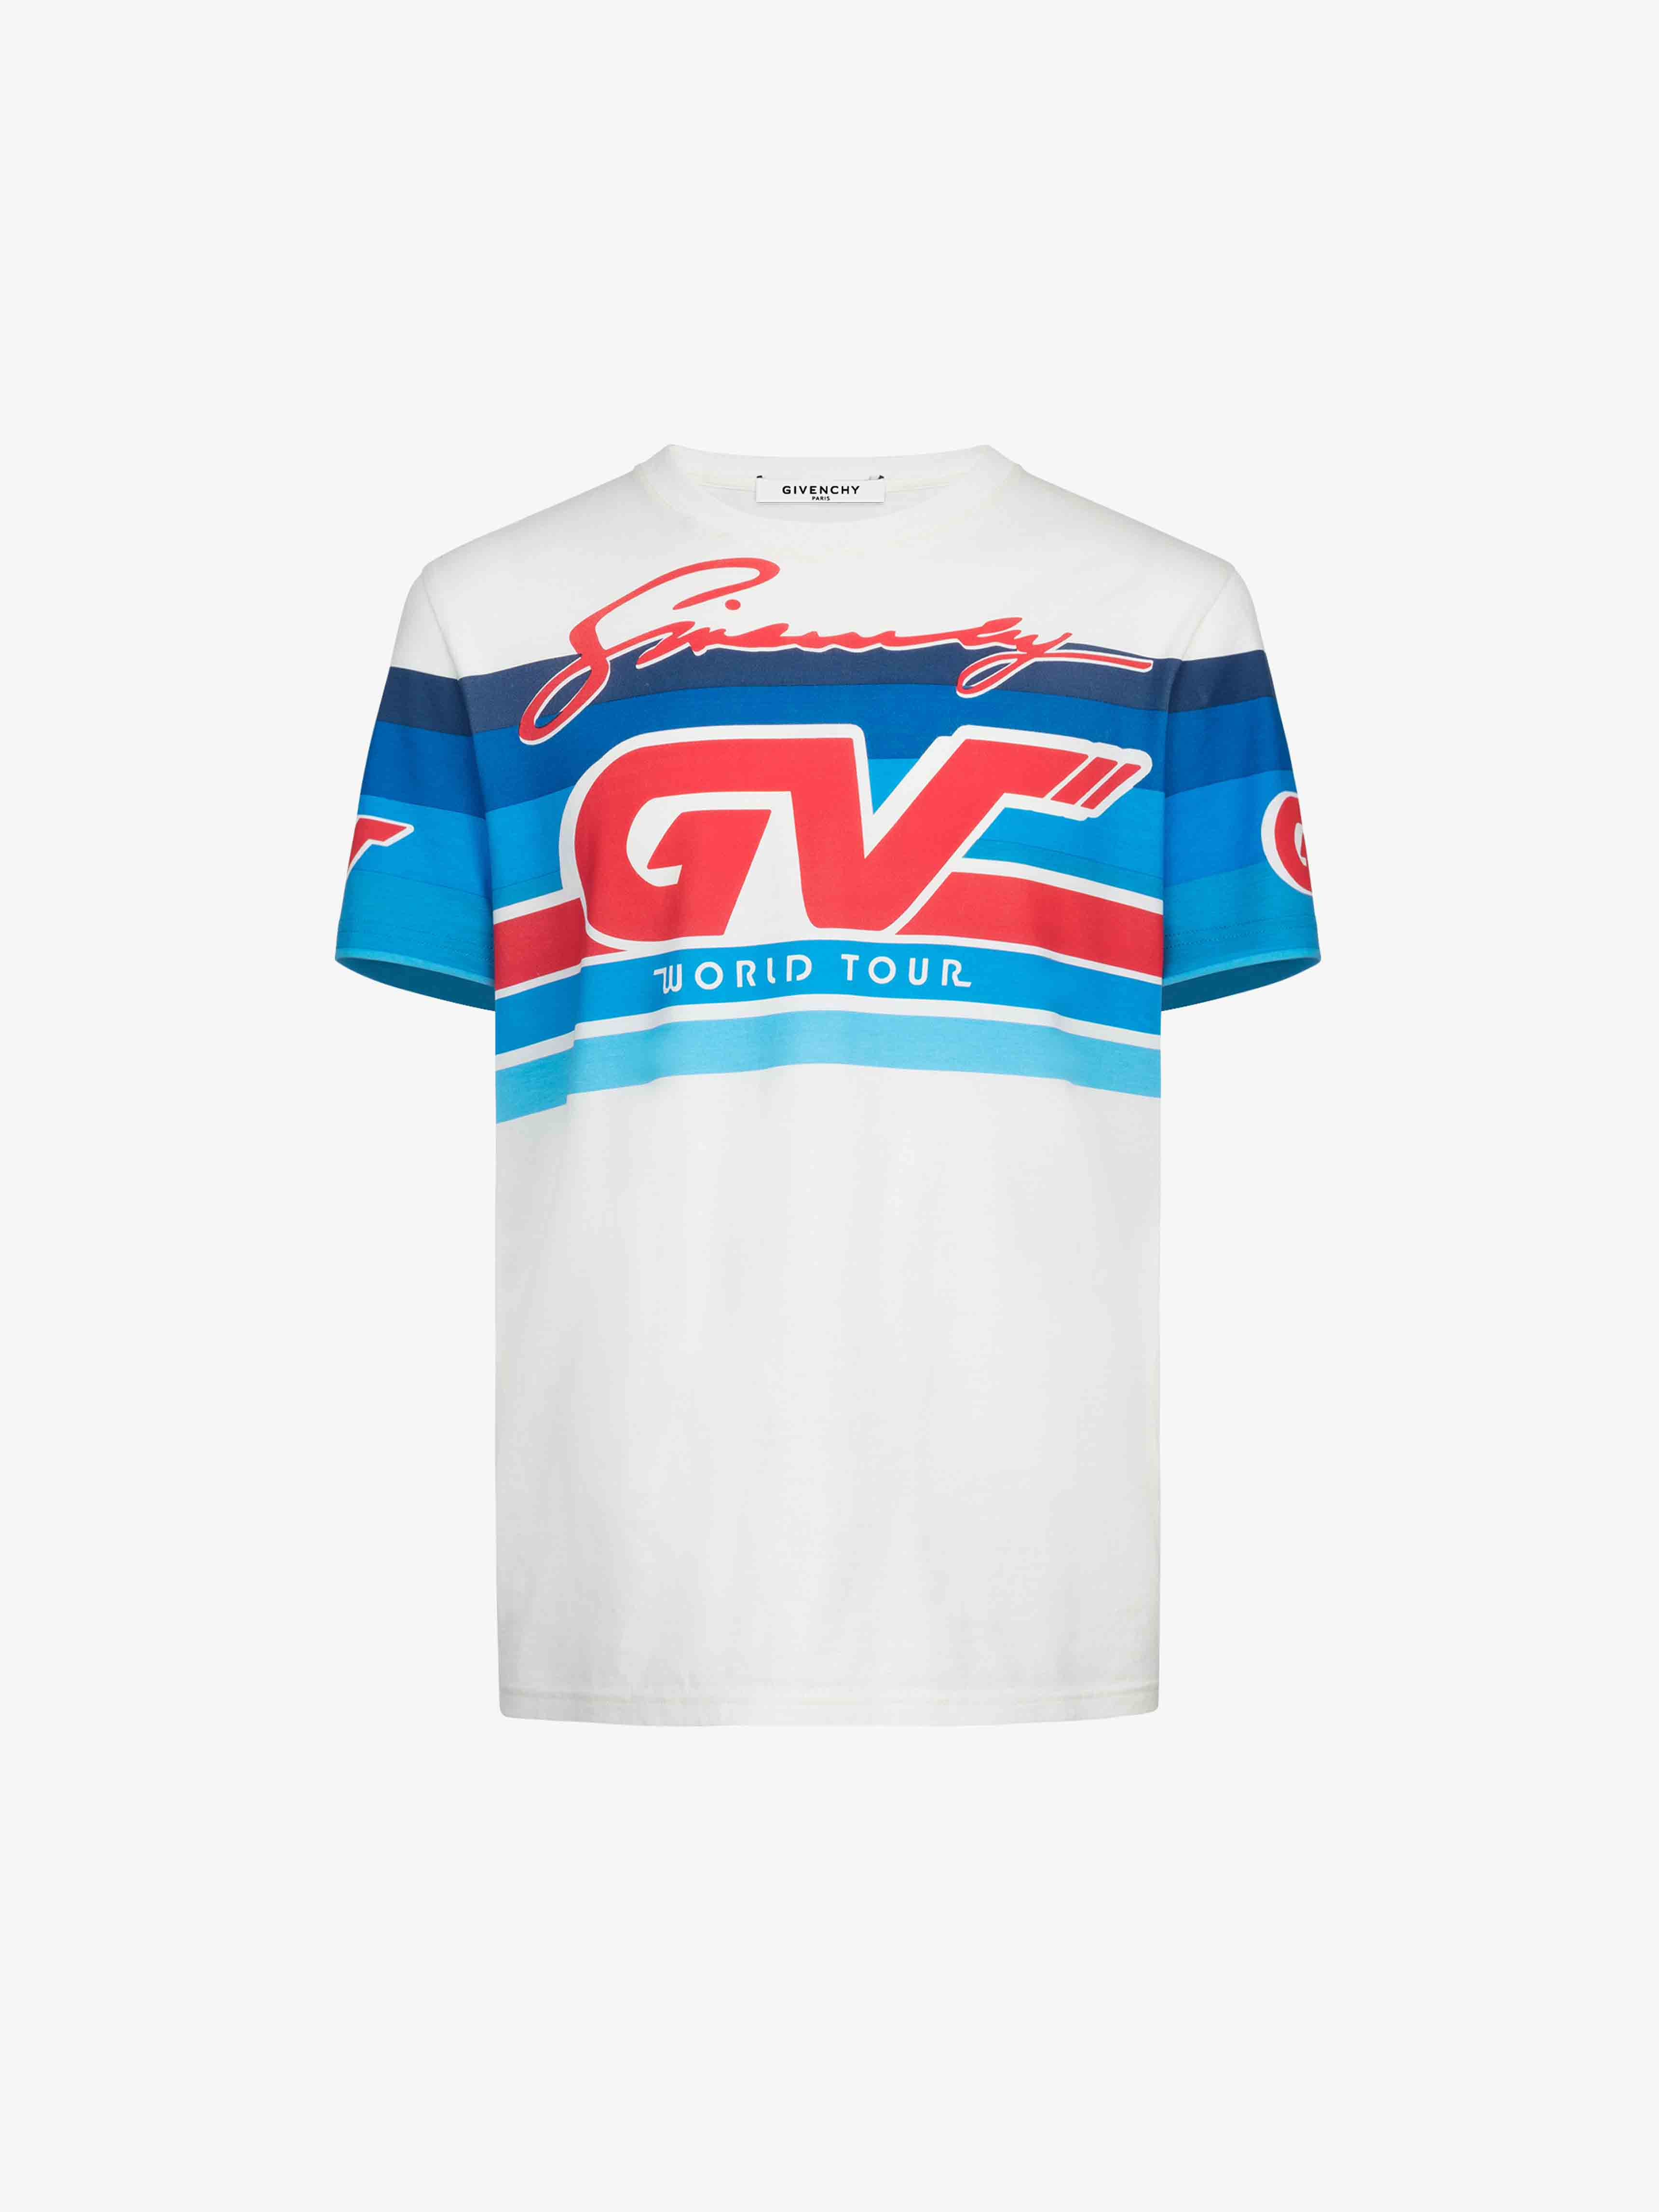 Le t shirt motocross Givenchy